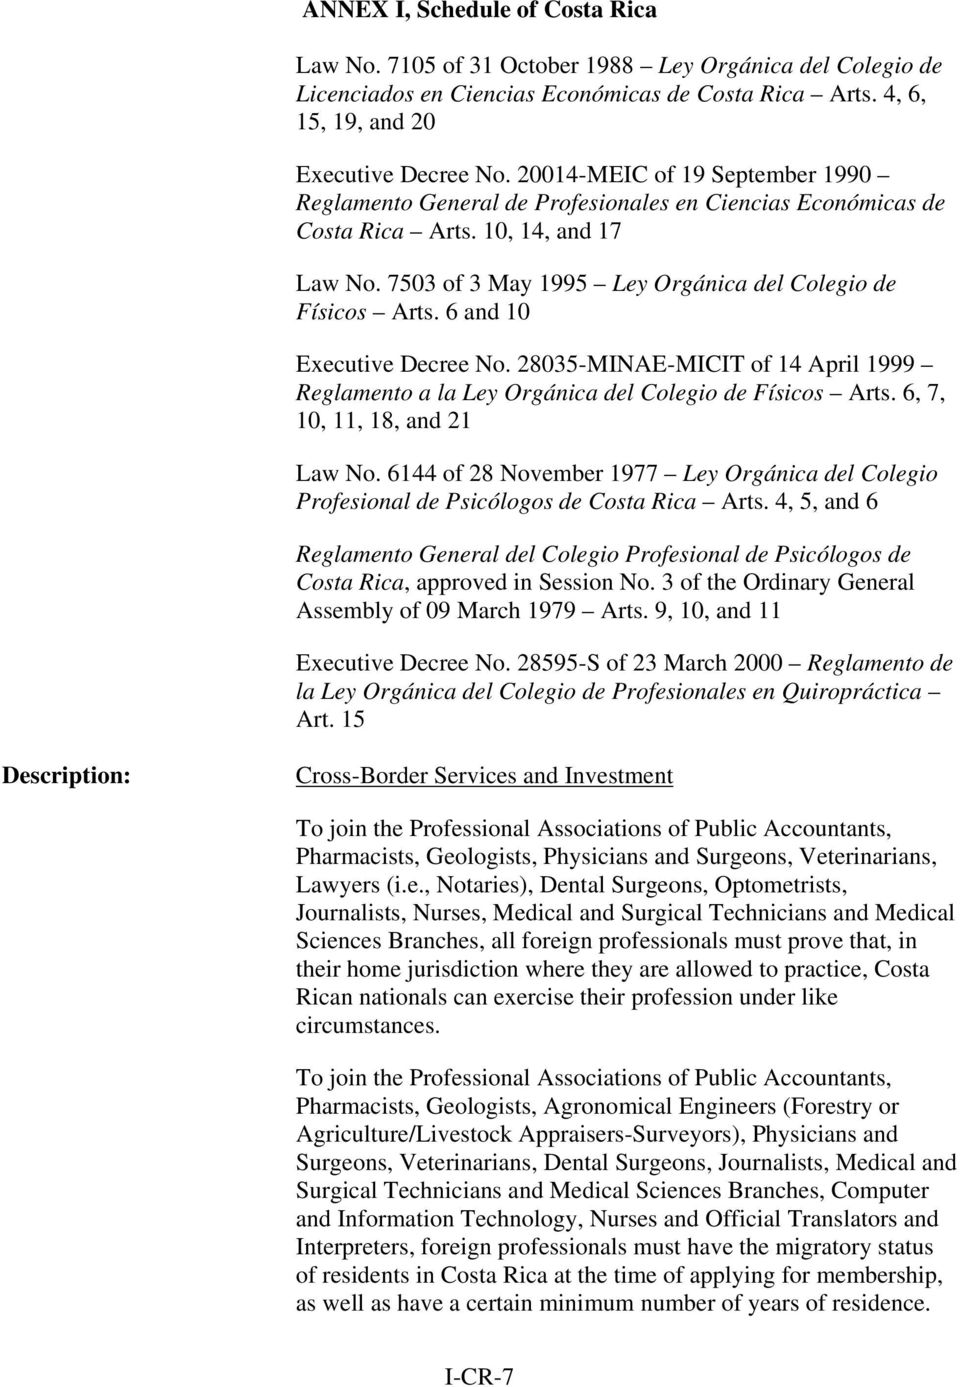 6 and 10 Executive Decree No. 28035-MINAE-MICIT of 14 April 1999 Reglamento a la Ley Orgánica del Colegio de Físicos Arts. 6, 7, 10, 11, 18, and 21 Law No.